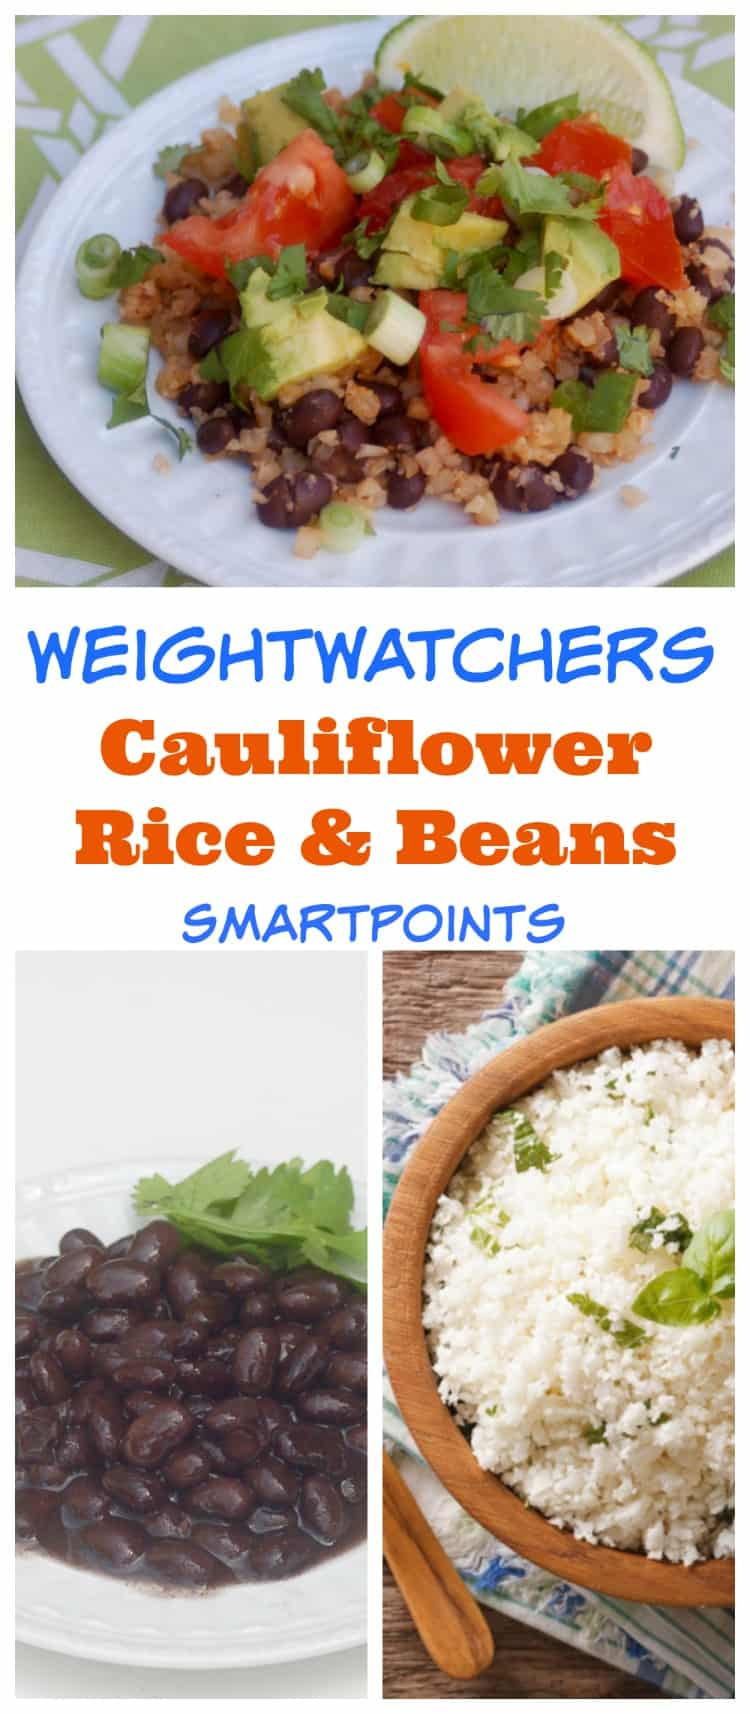 Weight Watchers Cauliflower Rice and Beans with Freestyle SmartPoints #easyhealthyrecipes #cookingfortwo #weightwatchersrecipes #wwfreestylerecipes #simplenourishedliving